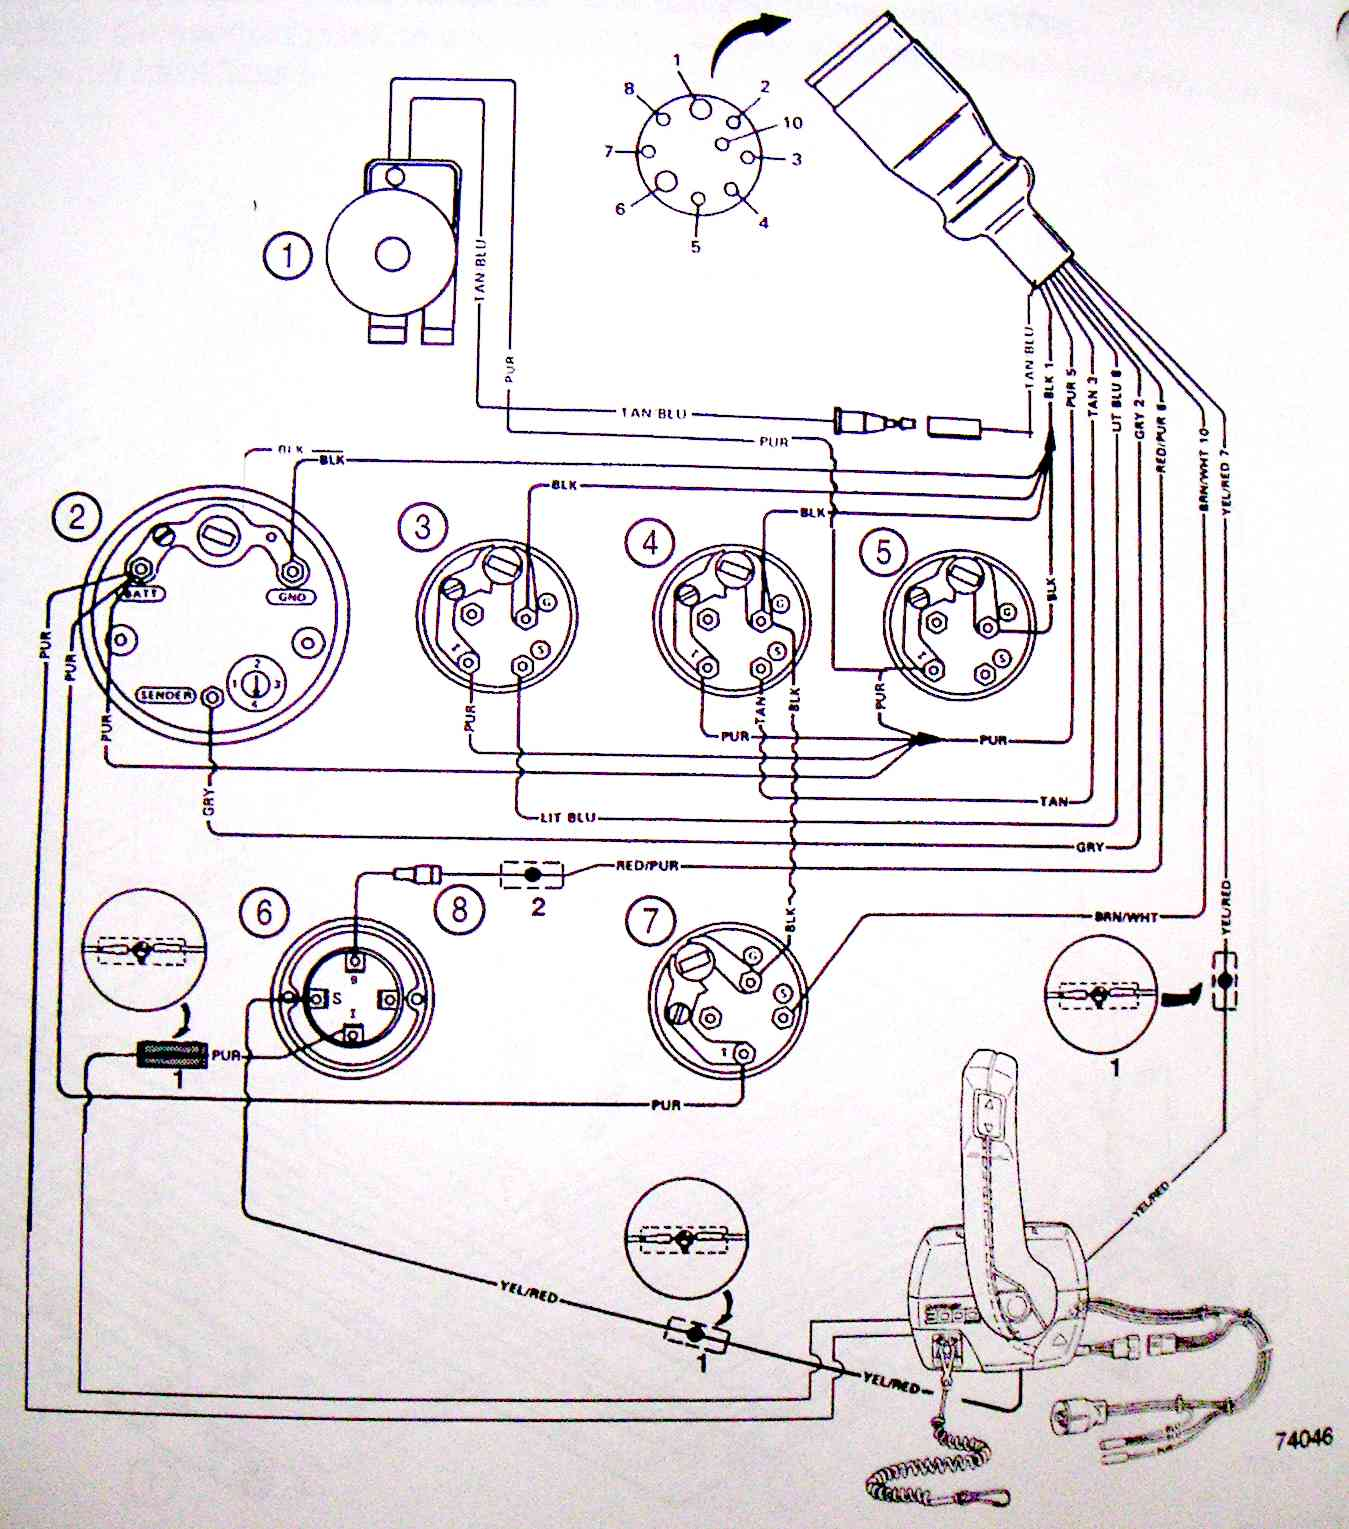 BoatHarness74046 wiring diagram for boat switches the wiring diagram readingrat net  at creativeand.co